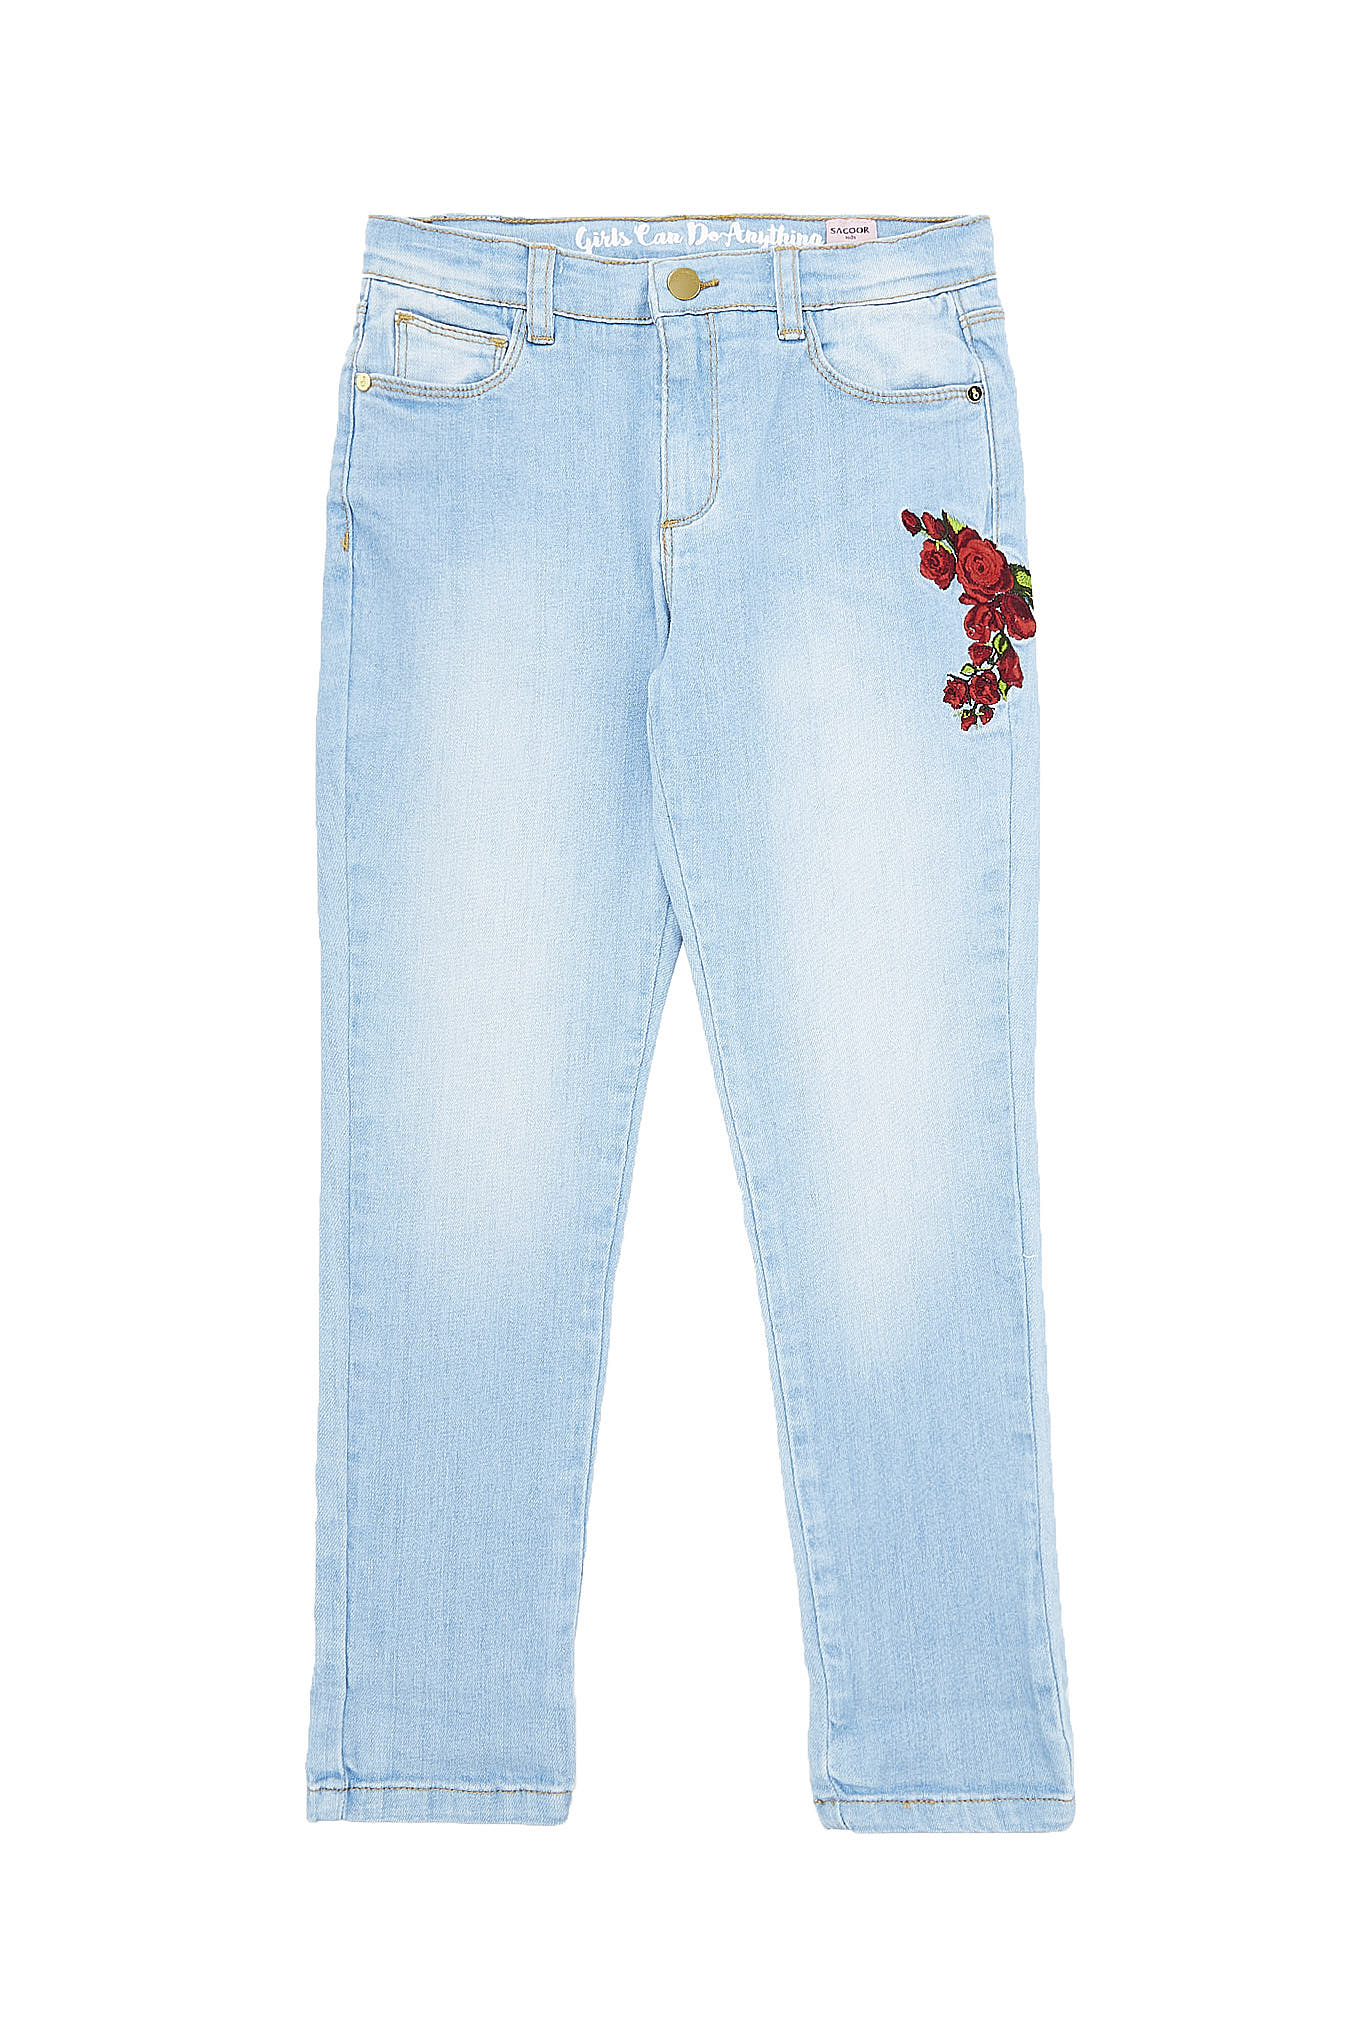 Jeans Light Blue Sport Girl